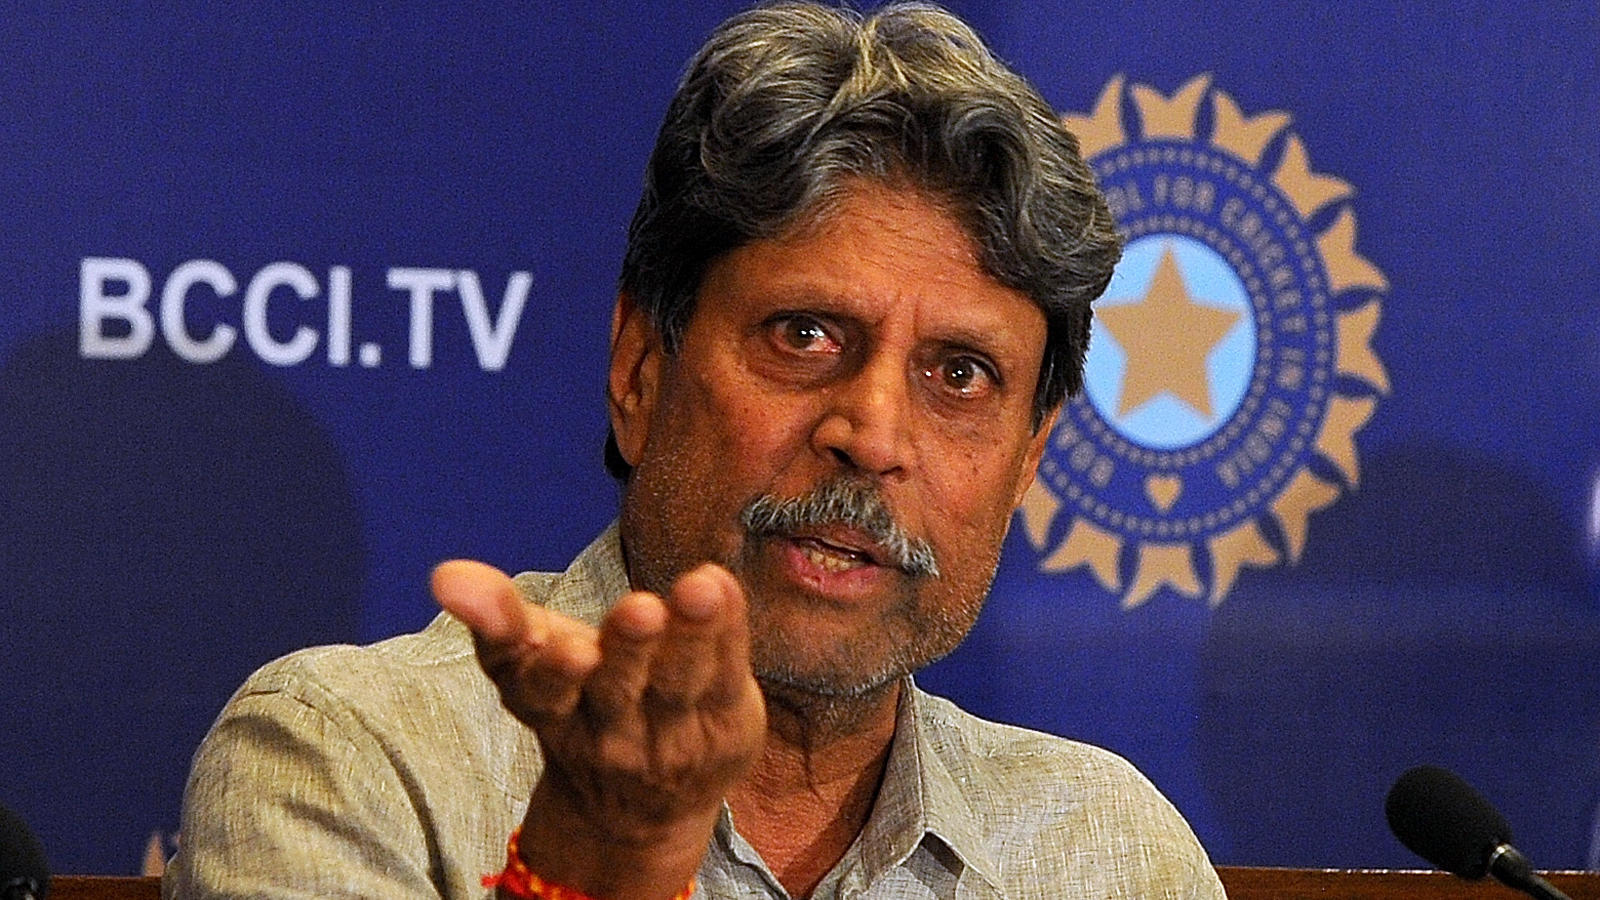 skip-ipl-if-you-feel-burnt-out-kapil-dev-tells-indian-cricketers